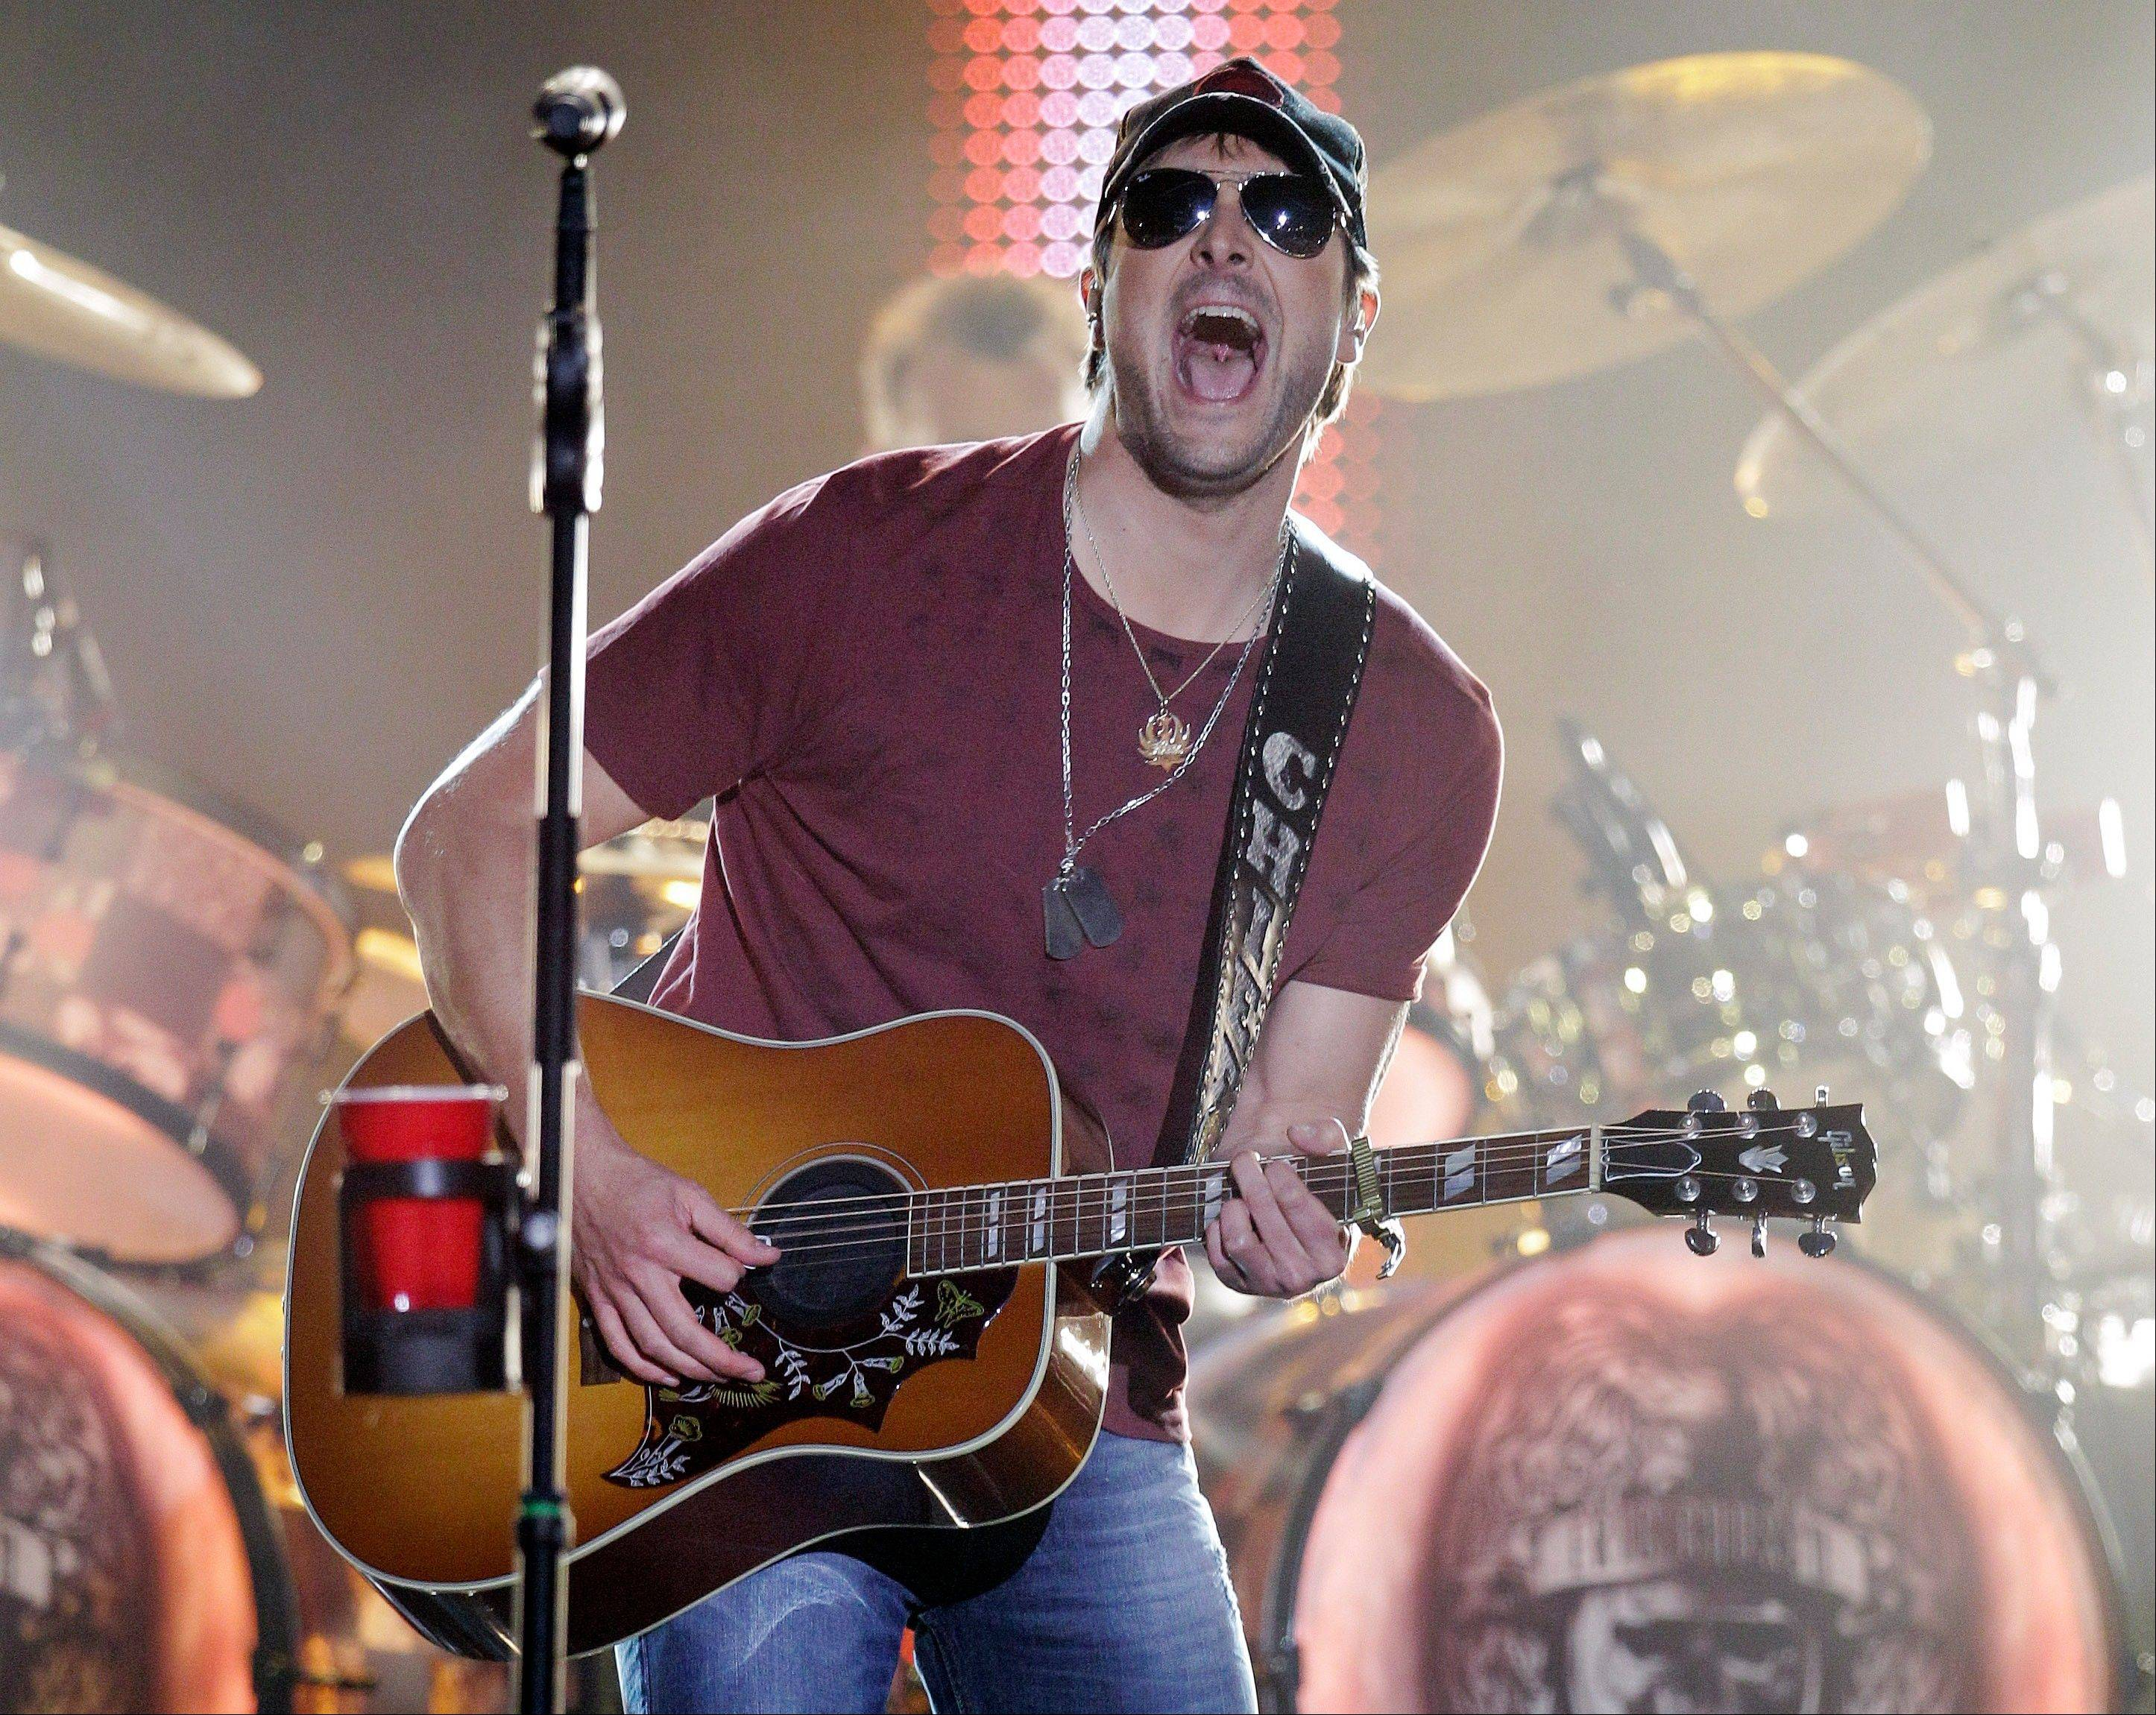 Eric Church performs on an outdoor stage during the CMT Music Awards show on Wednesday, June 6, 2012, in Nashville, Tenn.